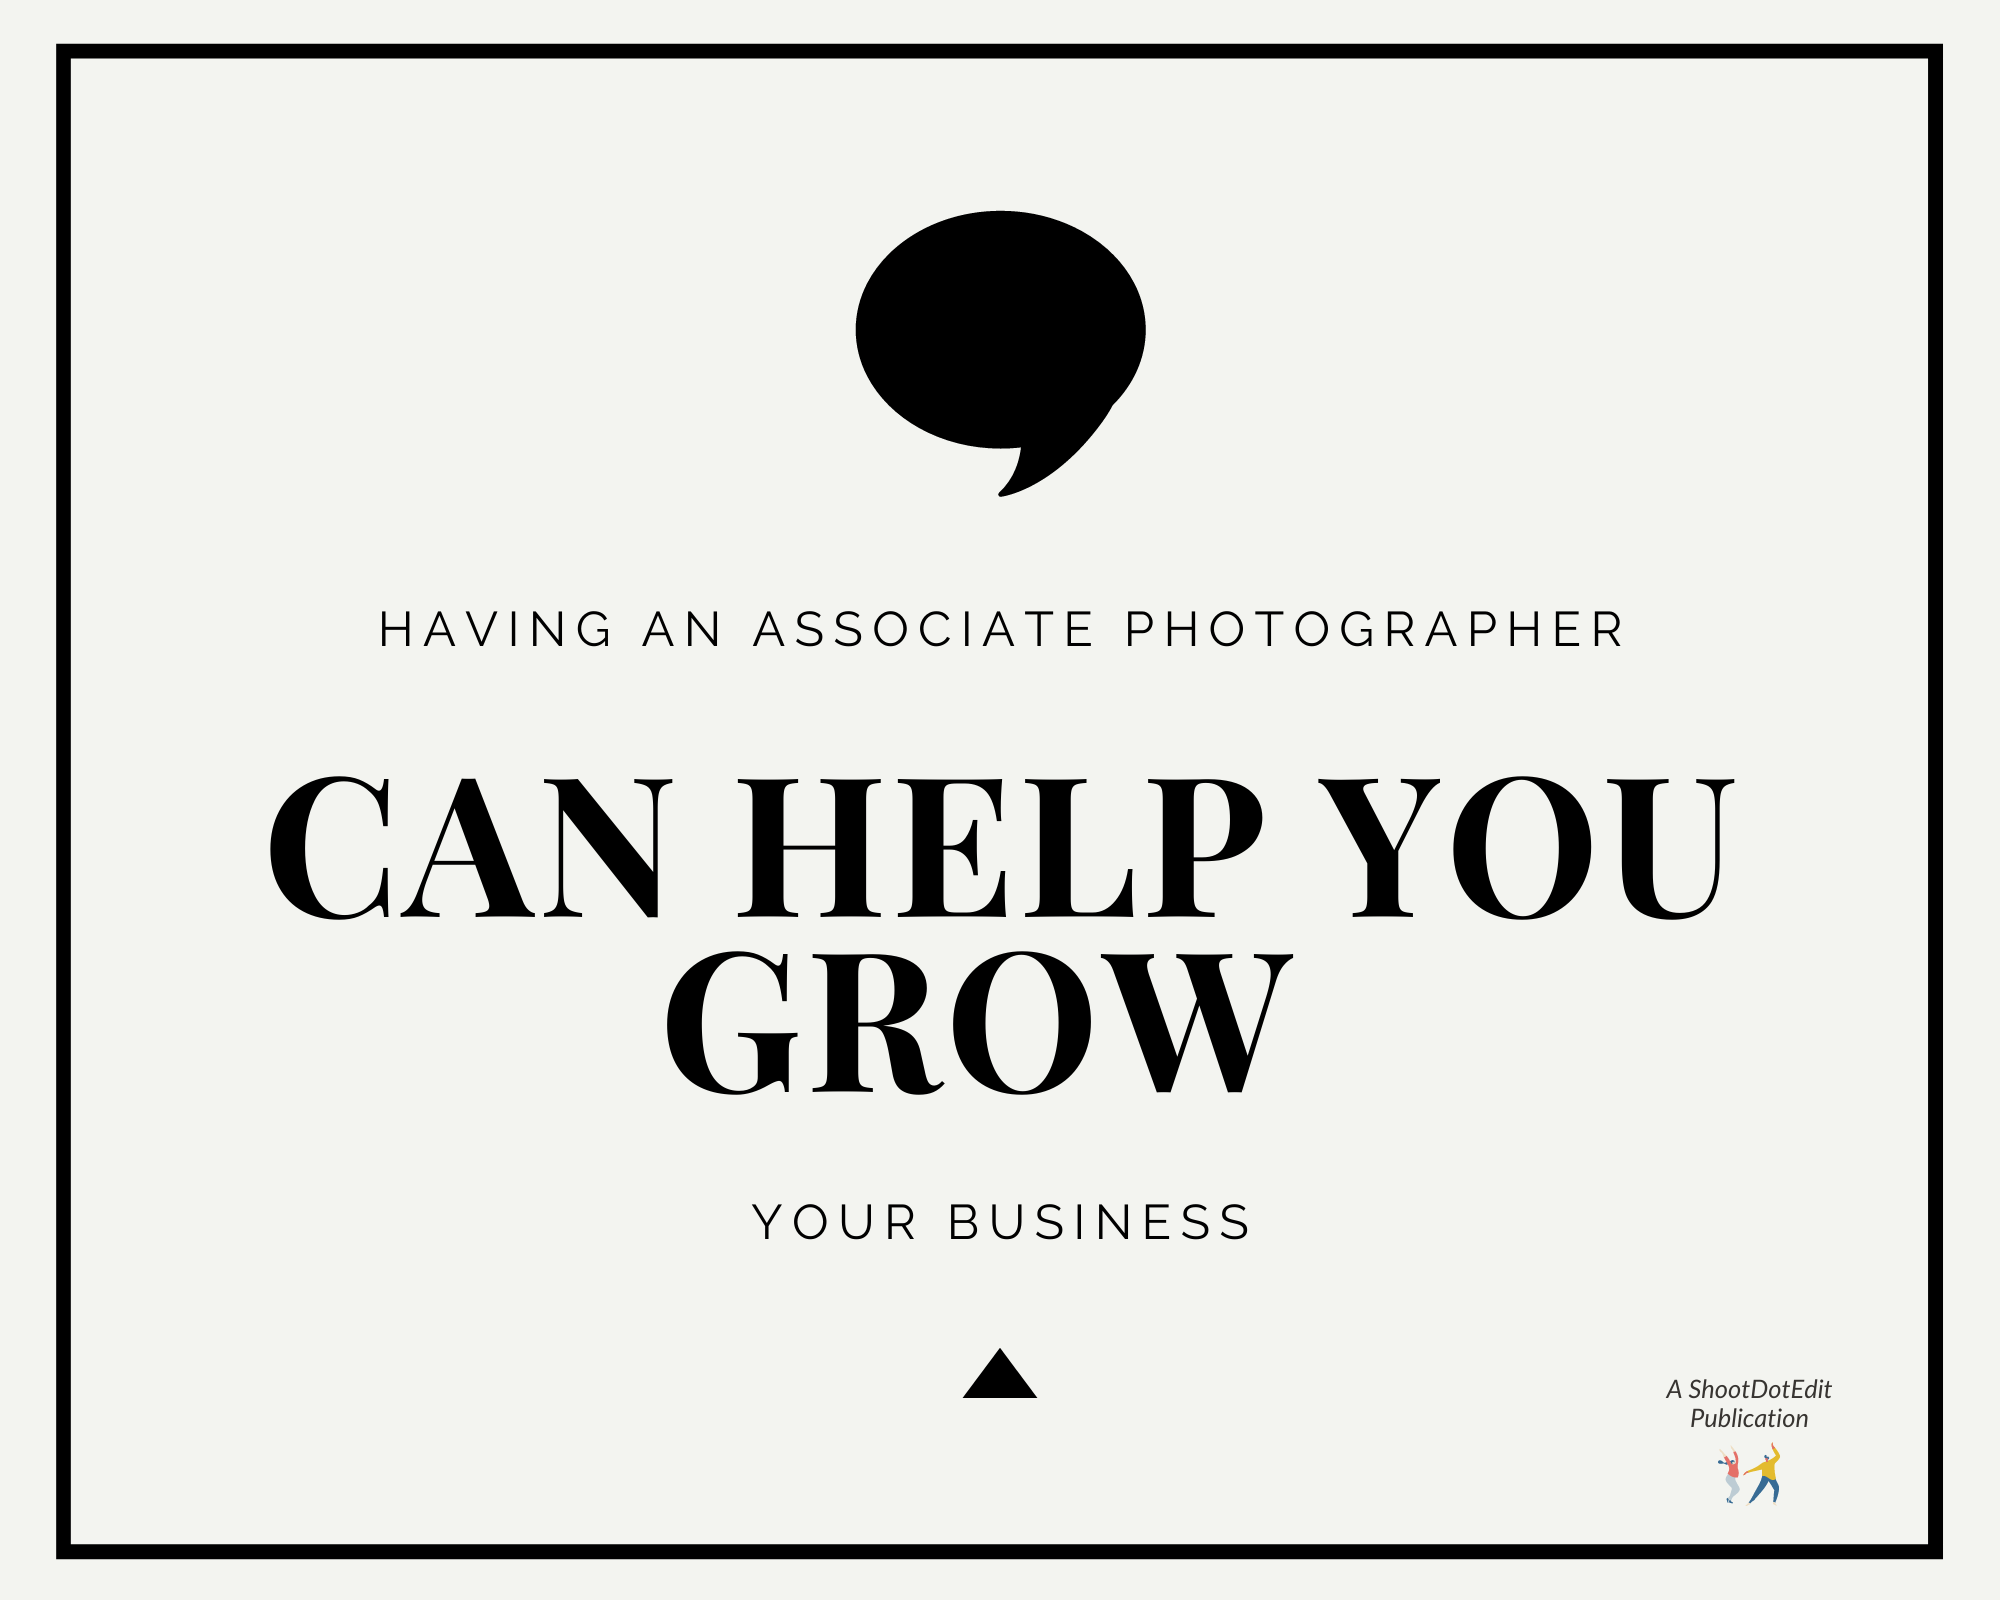 Infographic - Having a second photographer can help you grow your business